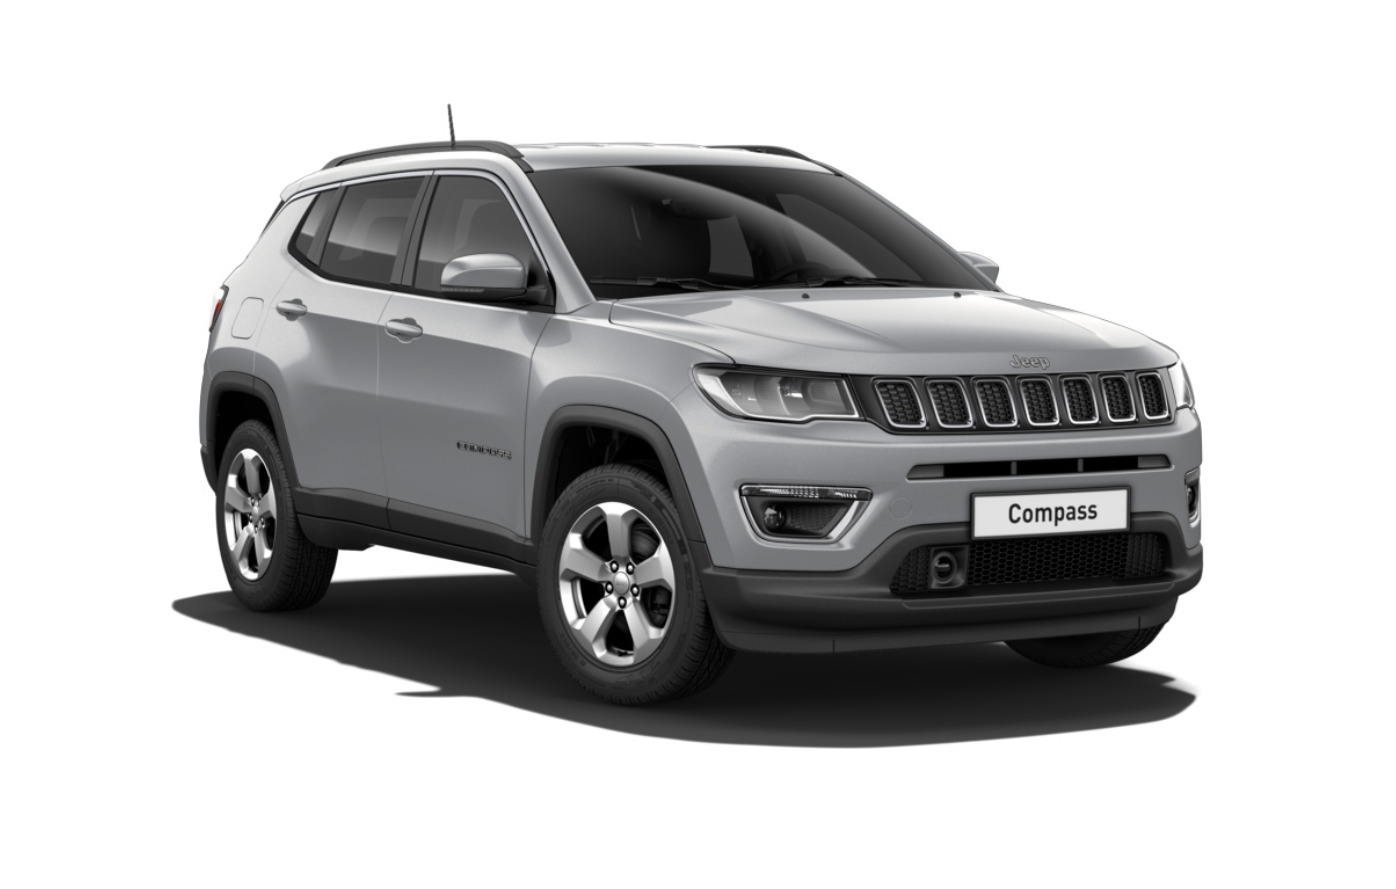 Jeep Compass 1.6 Multijet 120 Longitude 5dr